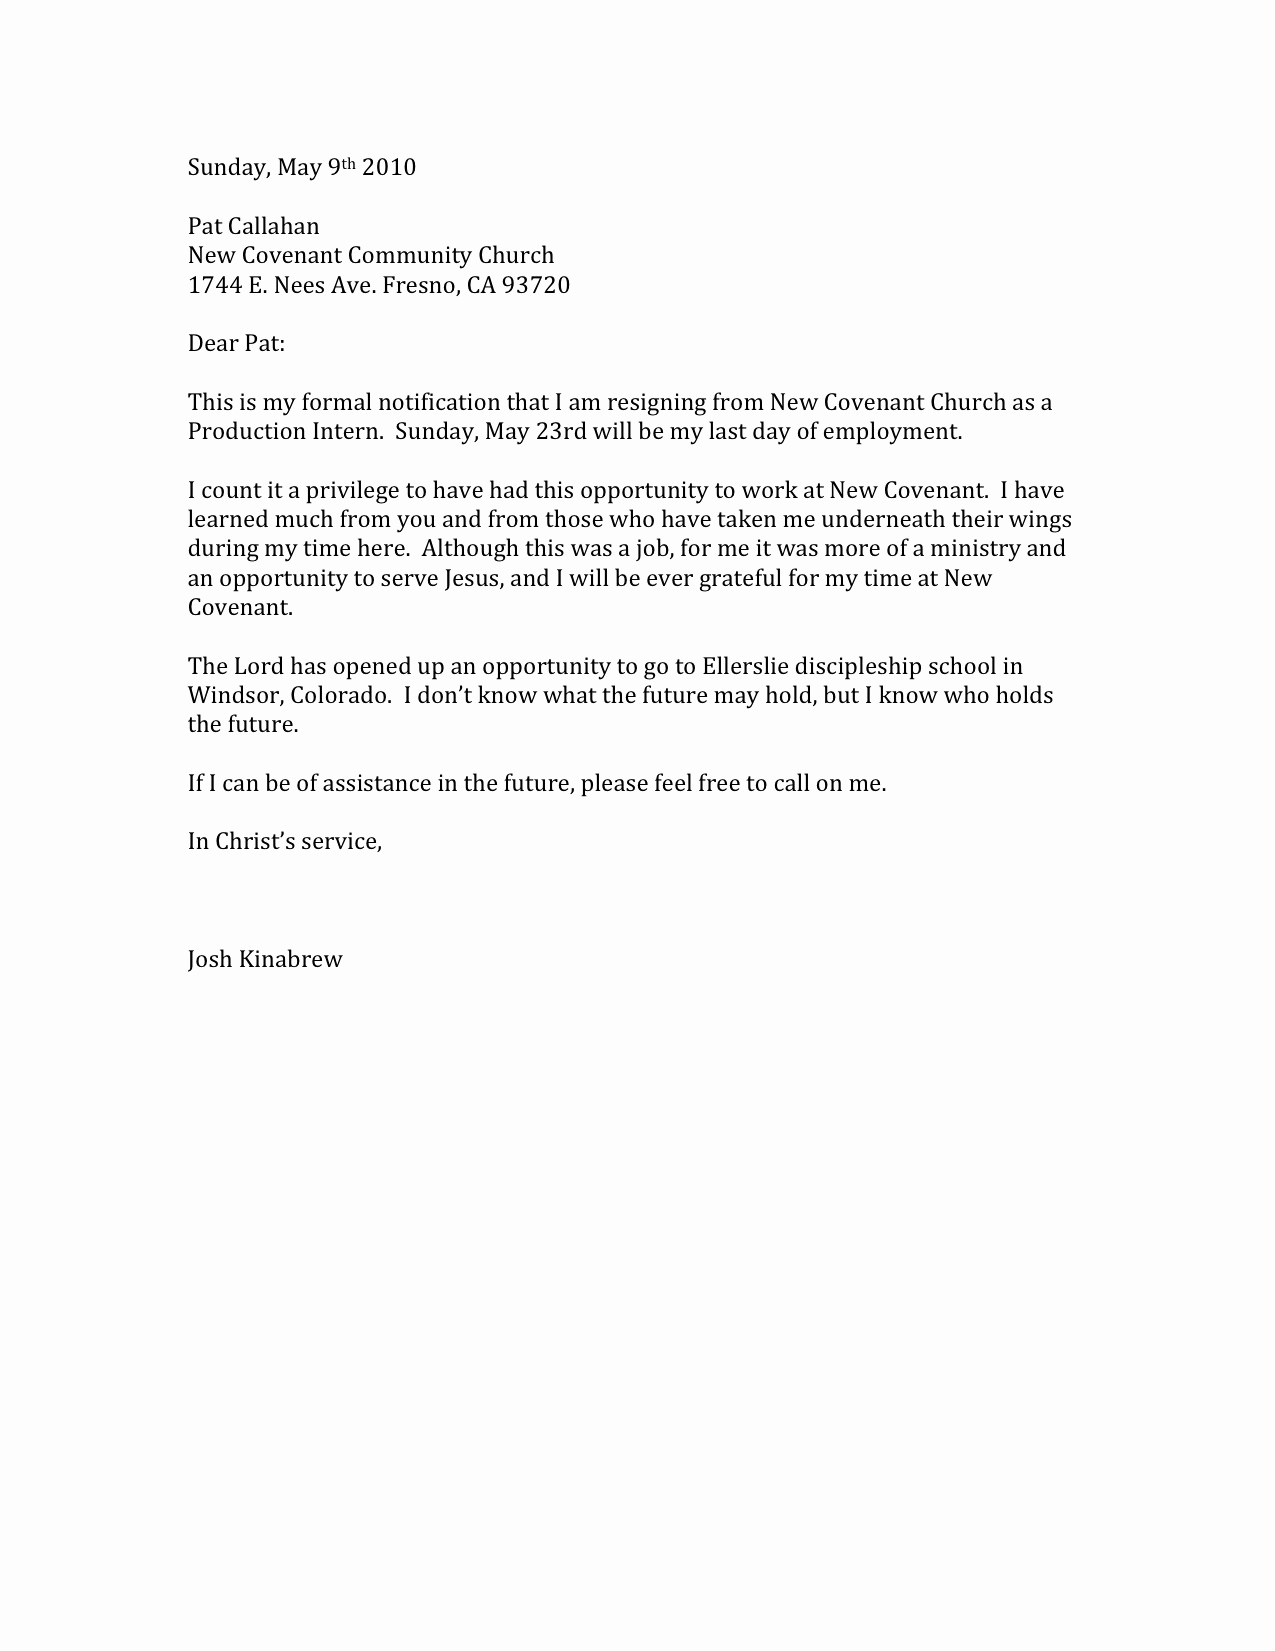 Professional Letter Of Resignation Lovely 12 Cool Letters Of Resignation Sample